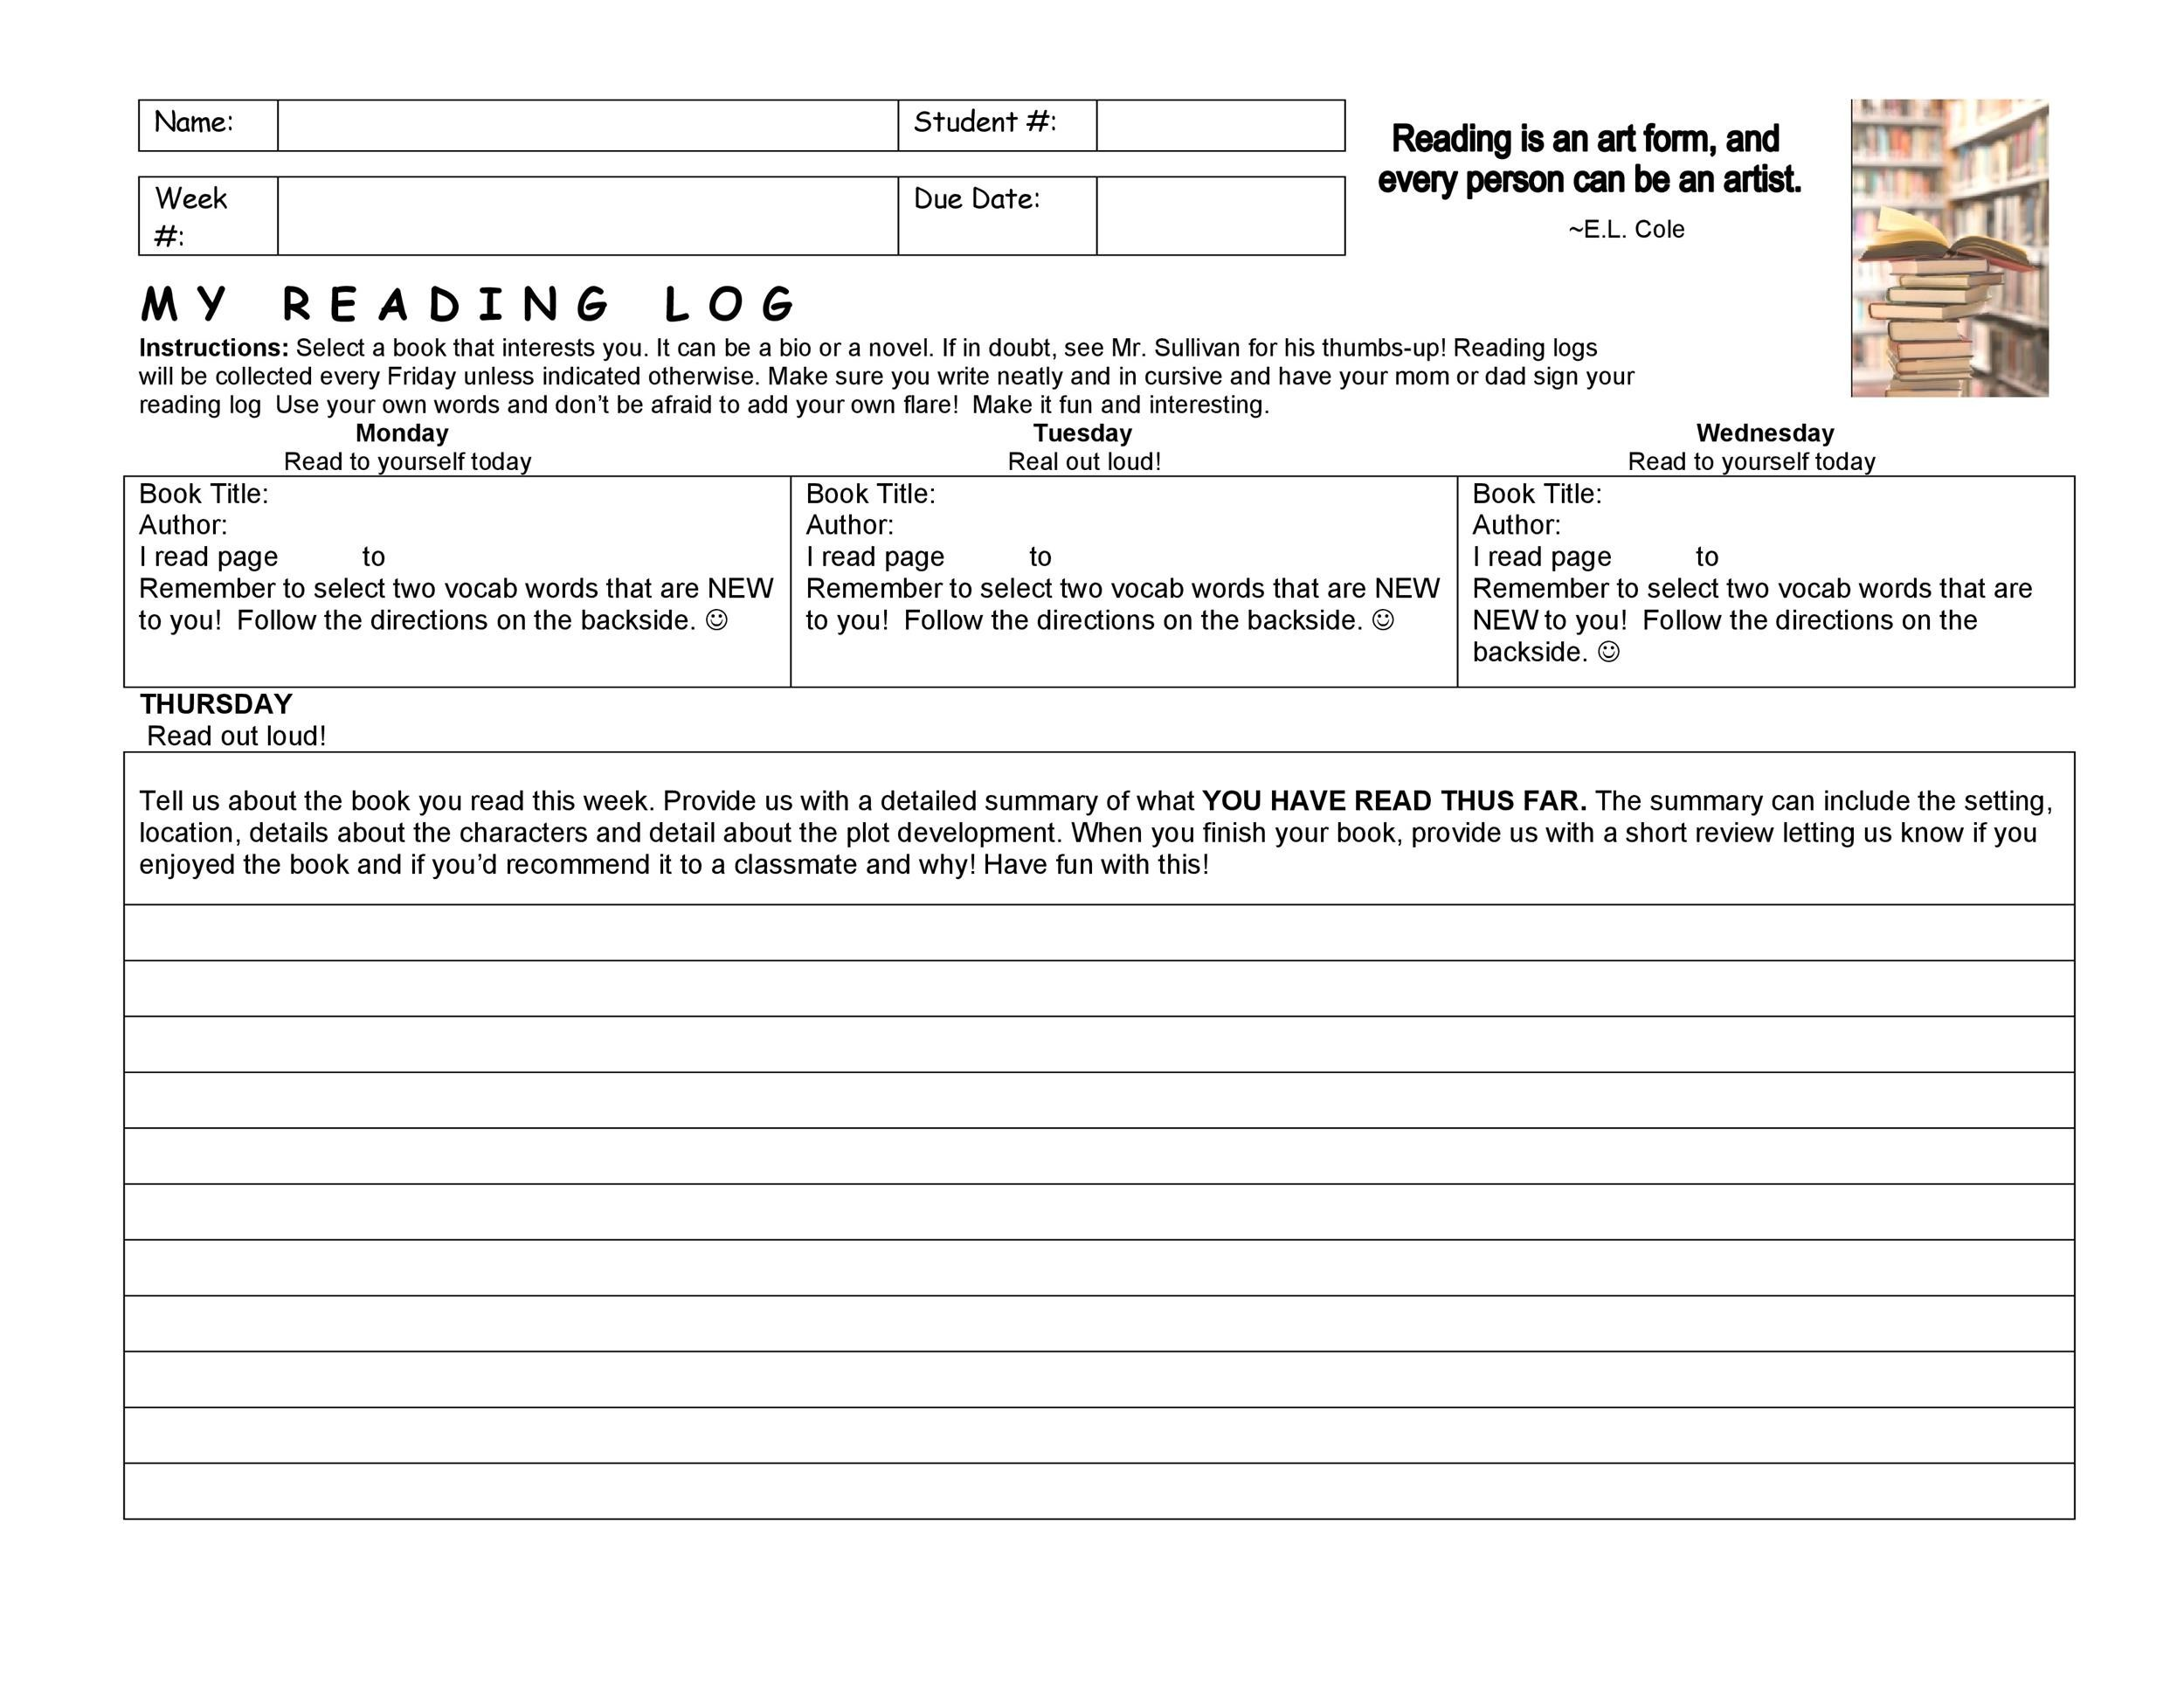 47 Printable Reading Log Templates for Kids, Middle School  Adults - Reading Log Template